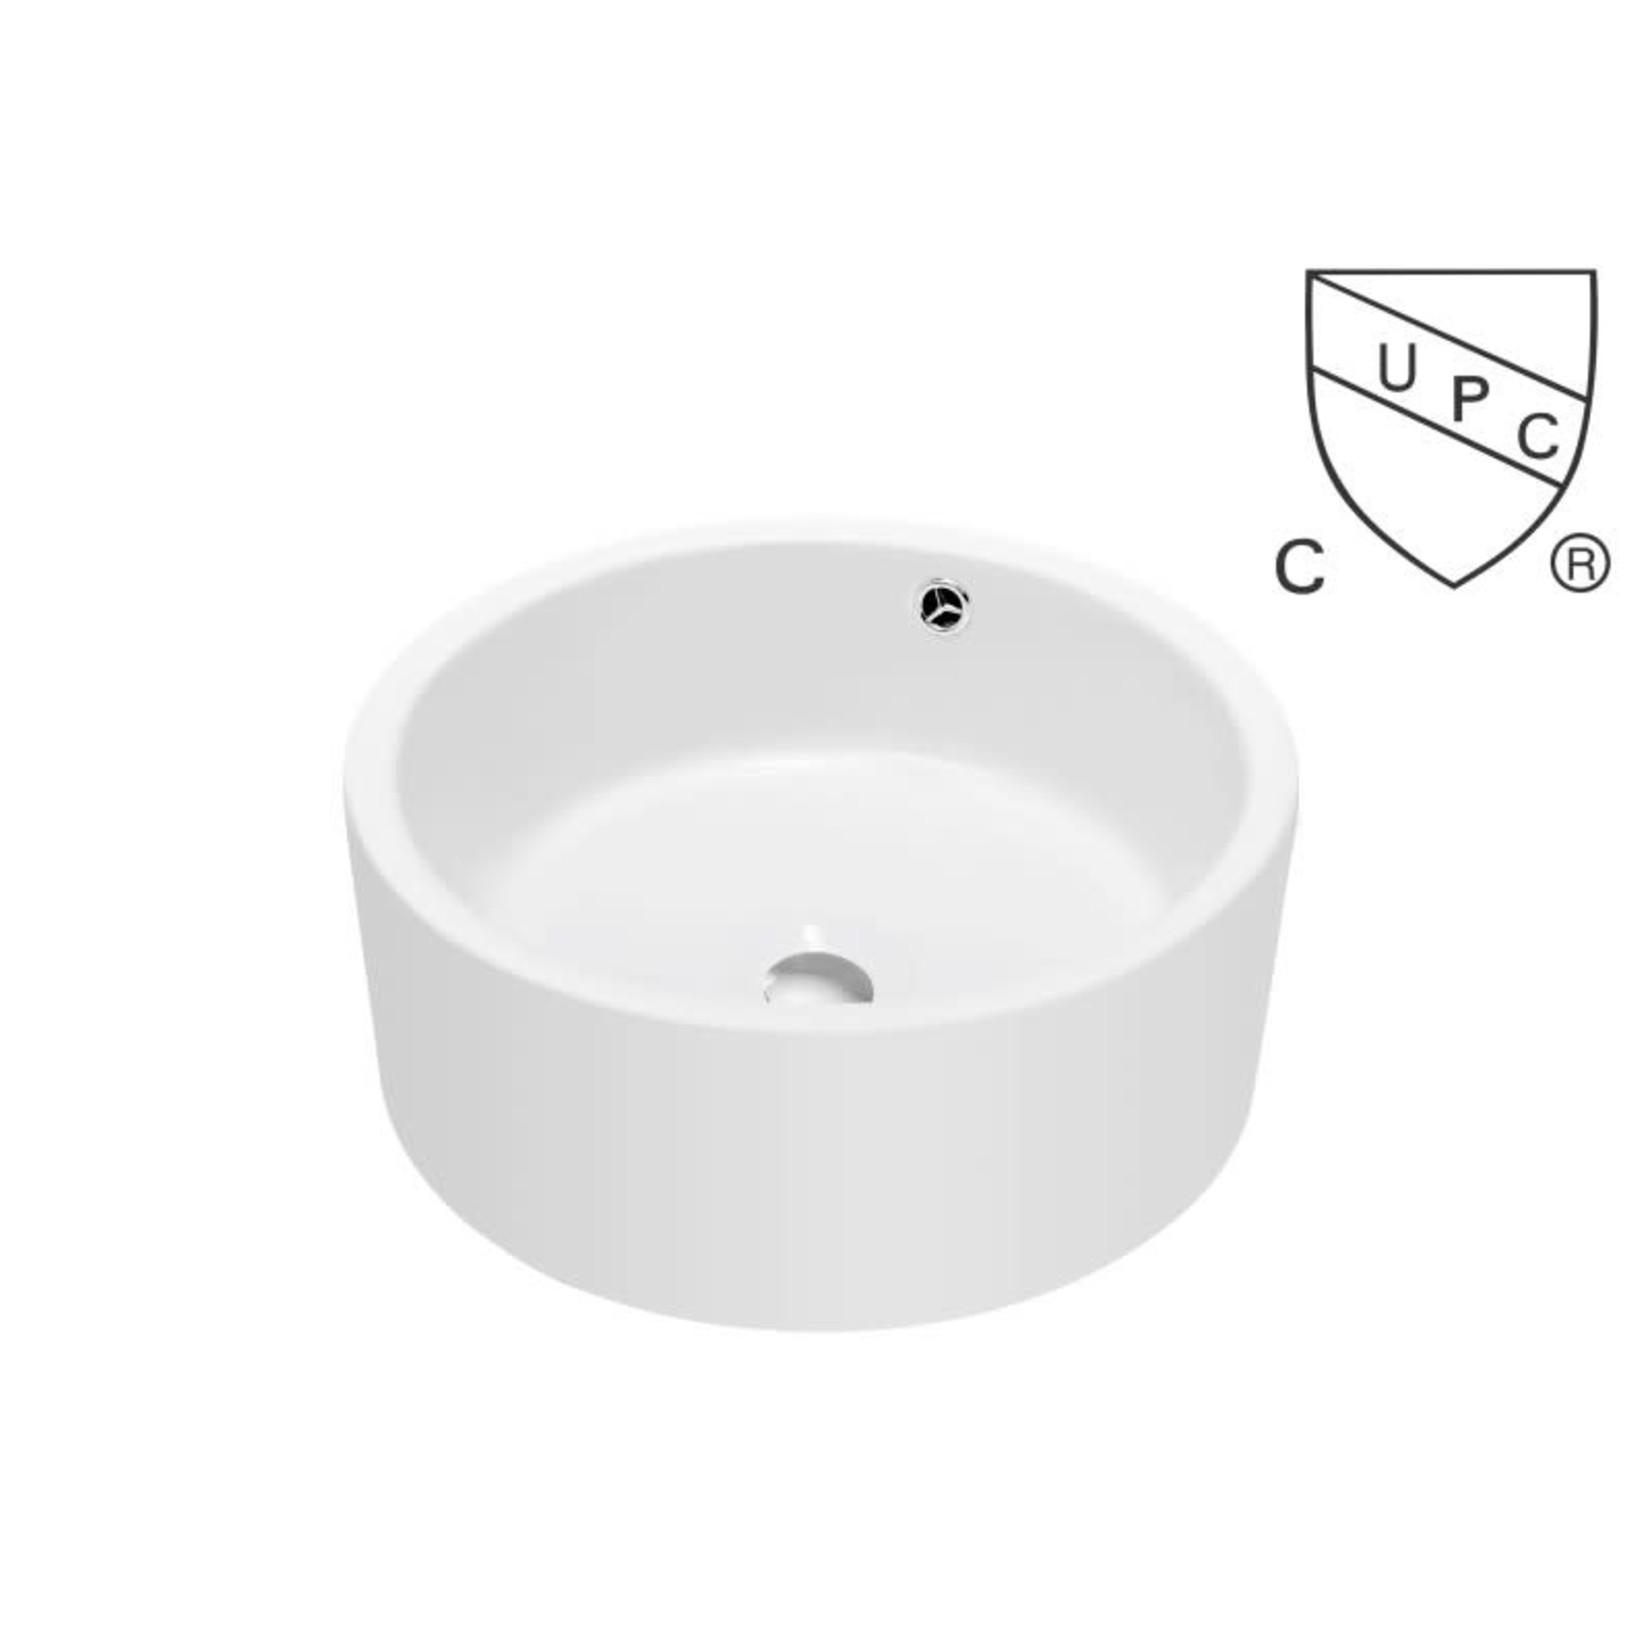 White porcelain basin DI-134537